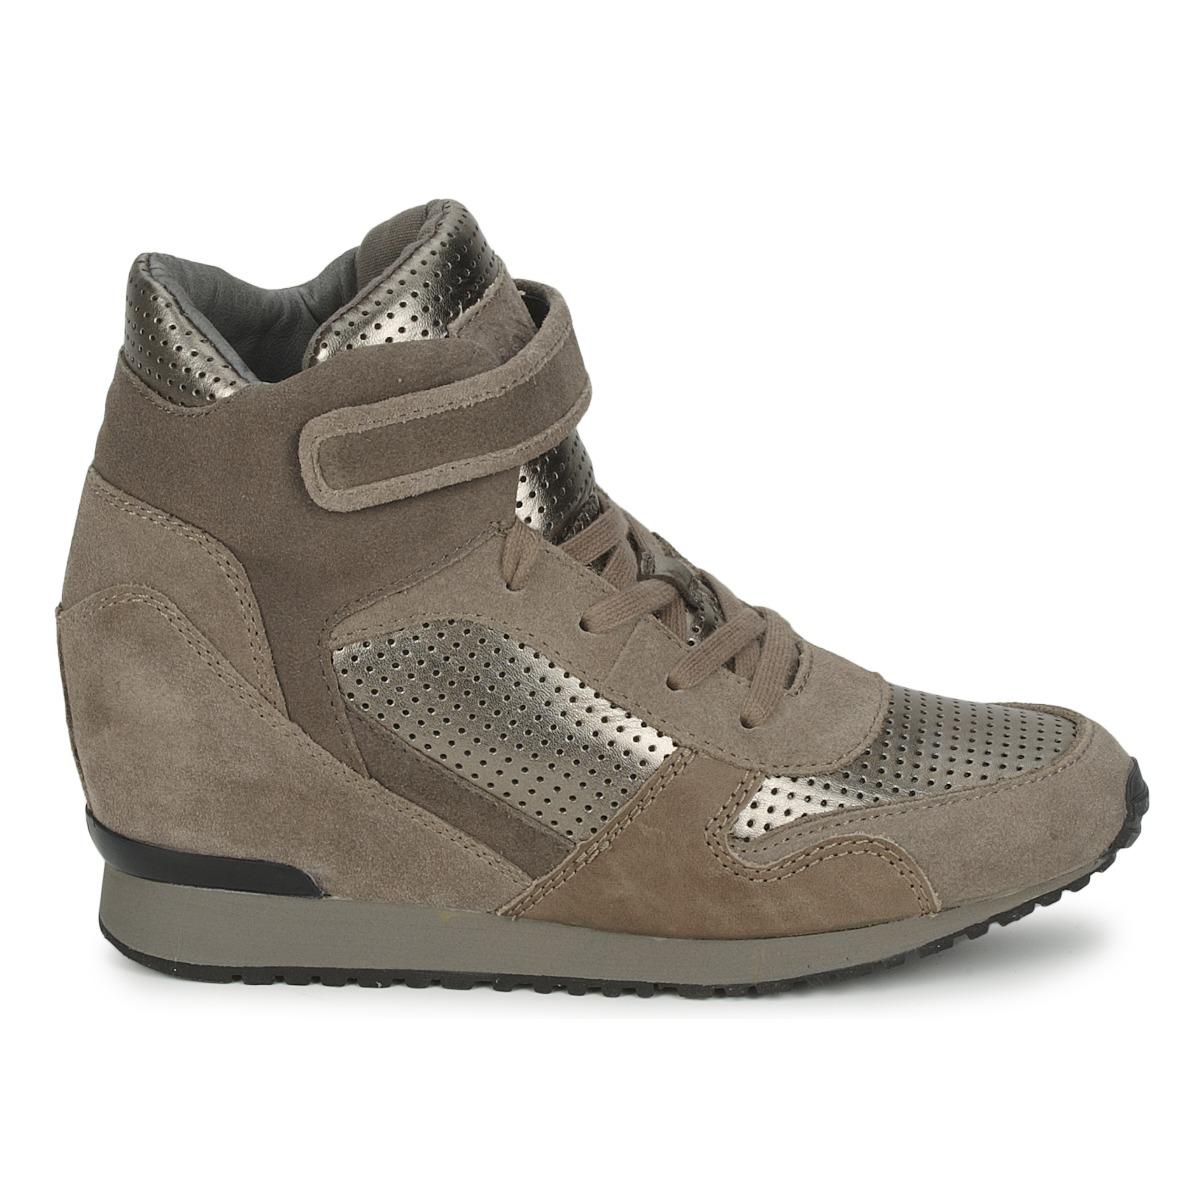 Ash Drum Women's Shoes (high-top Trainers) In Brown - Save 18%